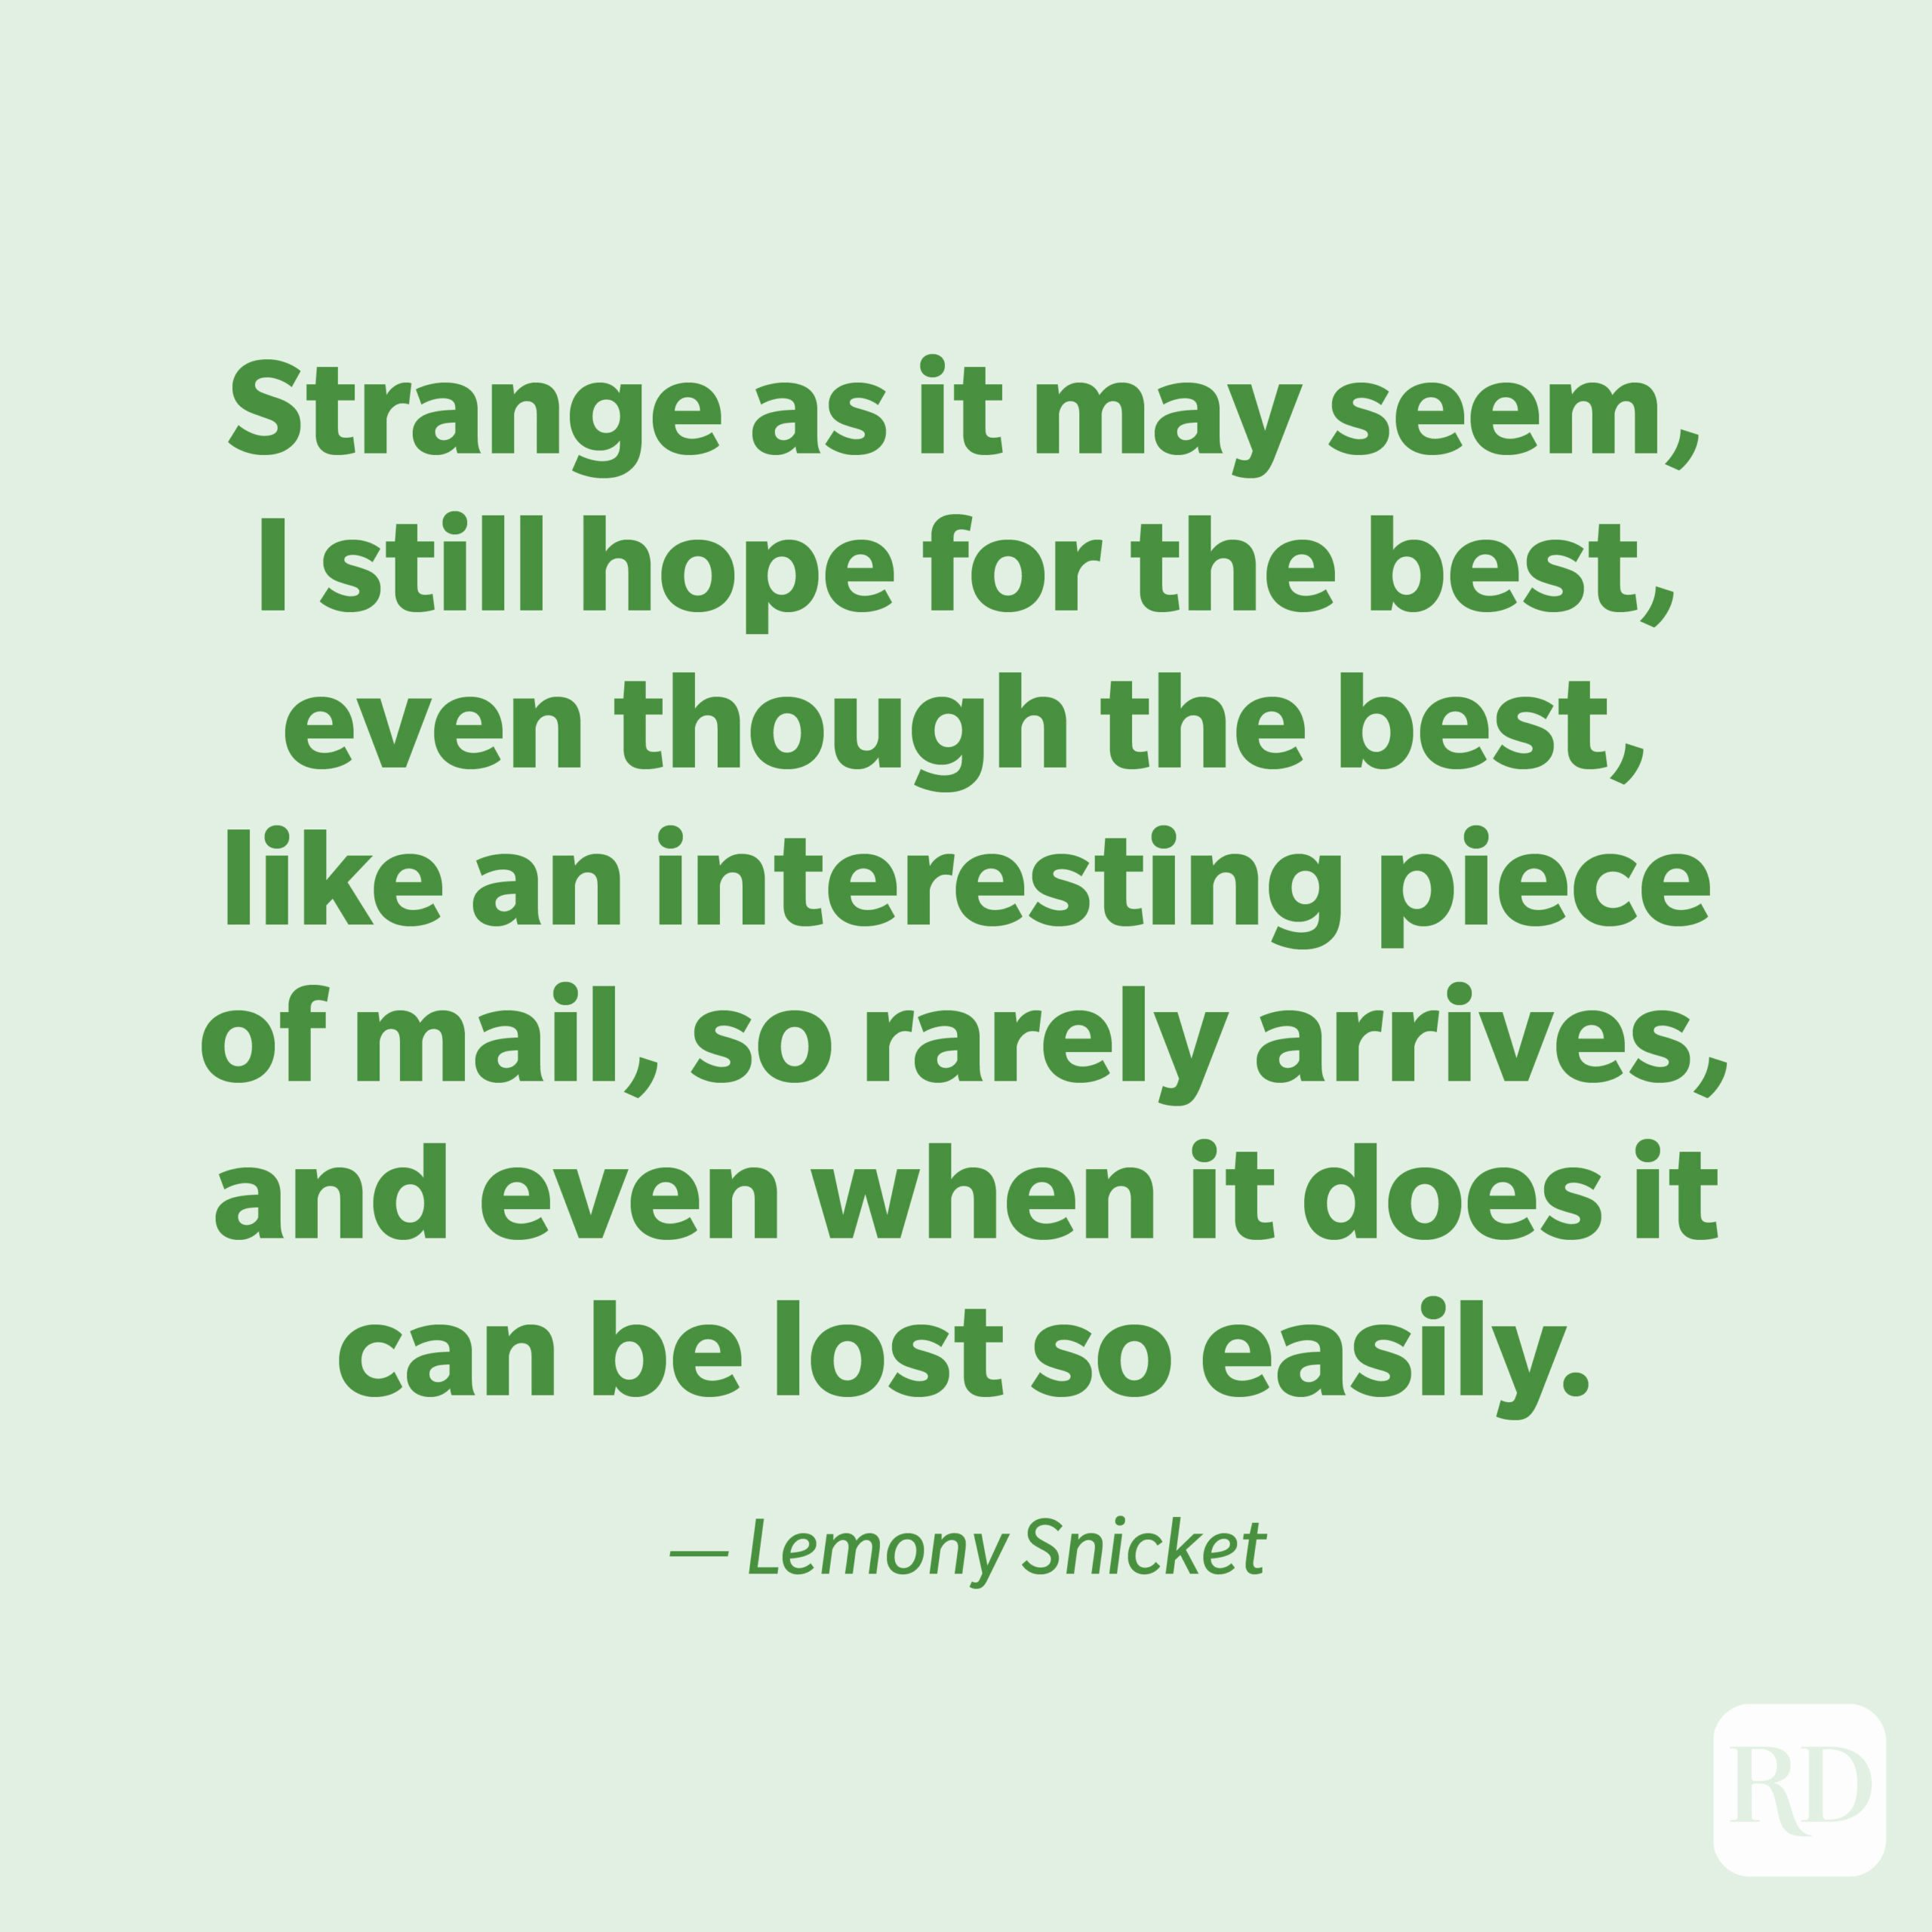 """""""Strange as it may seem, I still hope for the best, even though the best, like an interesting piece of mail, so rarely arrives, and even when it does it can be lost so easily."""" —Lemony Snicket"""